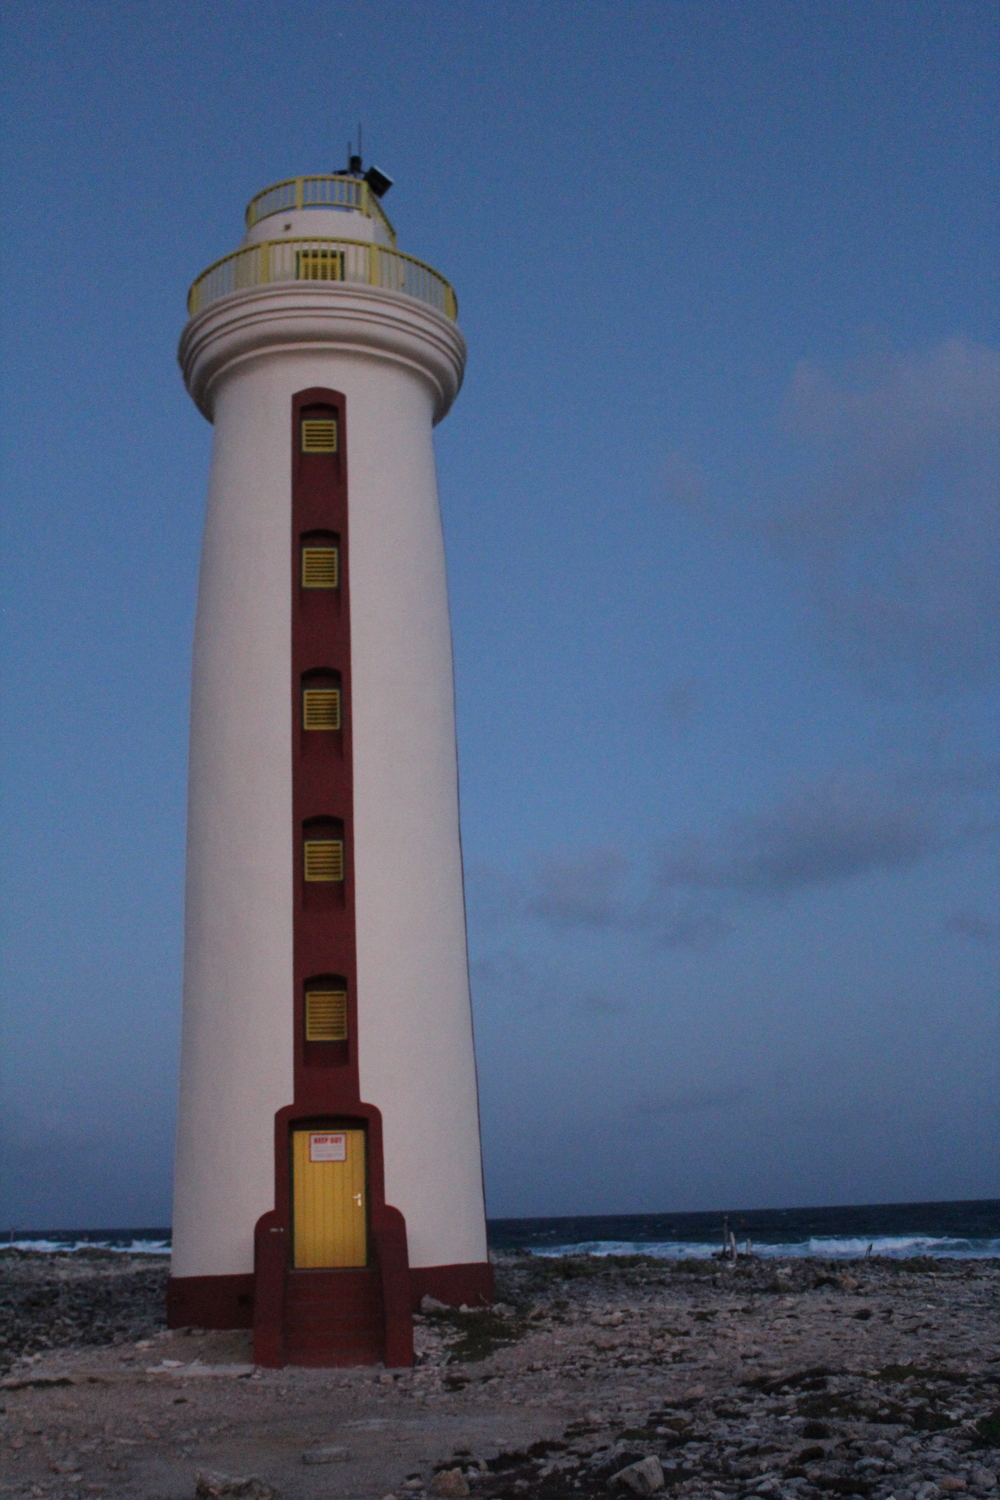 Lighthouse on the tip of Bonaire